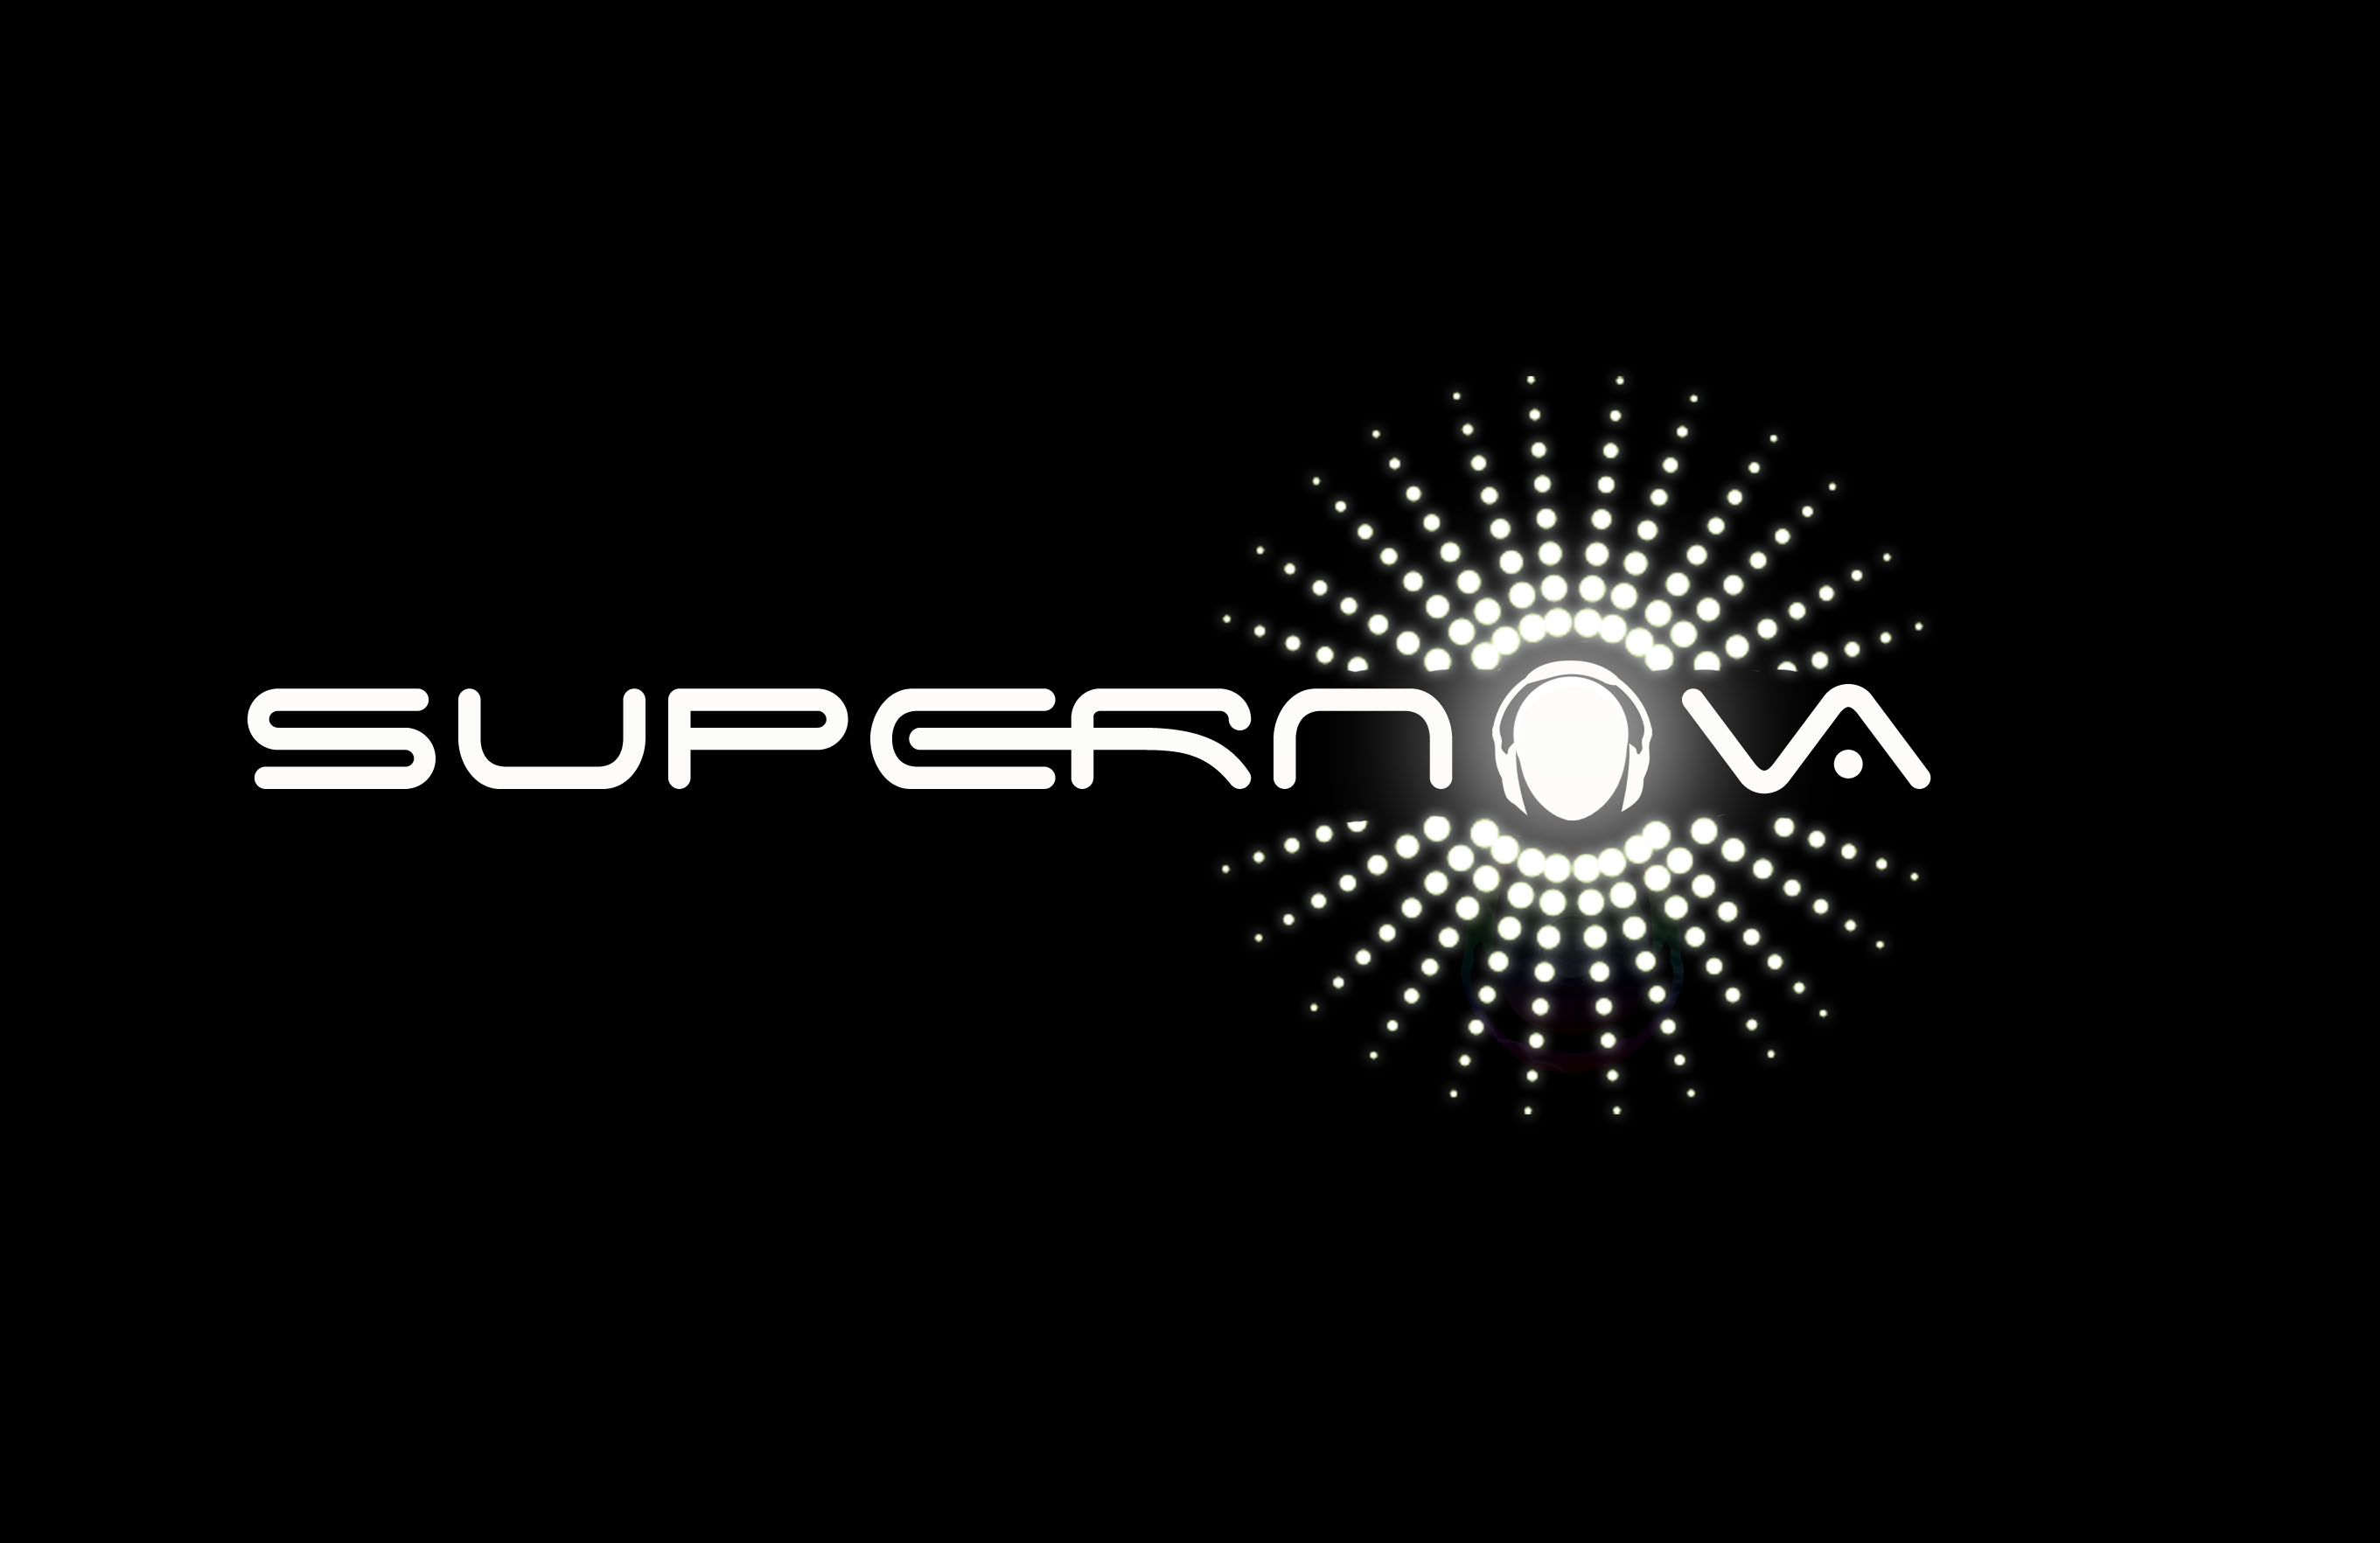 Logo Design by JSDESIGNGROUP - Entry No. 258 in the Logo Design Contest Creative Logo Design for Supernova.